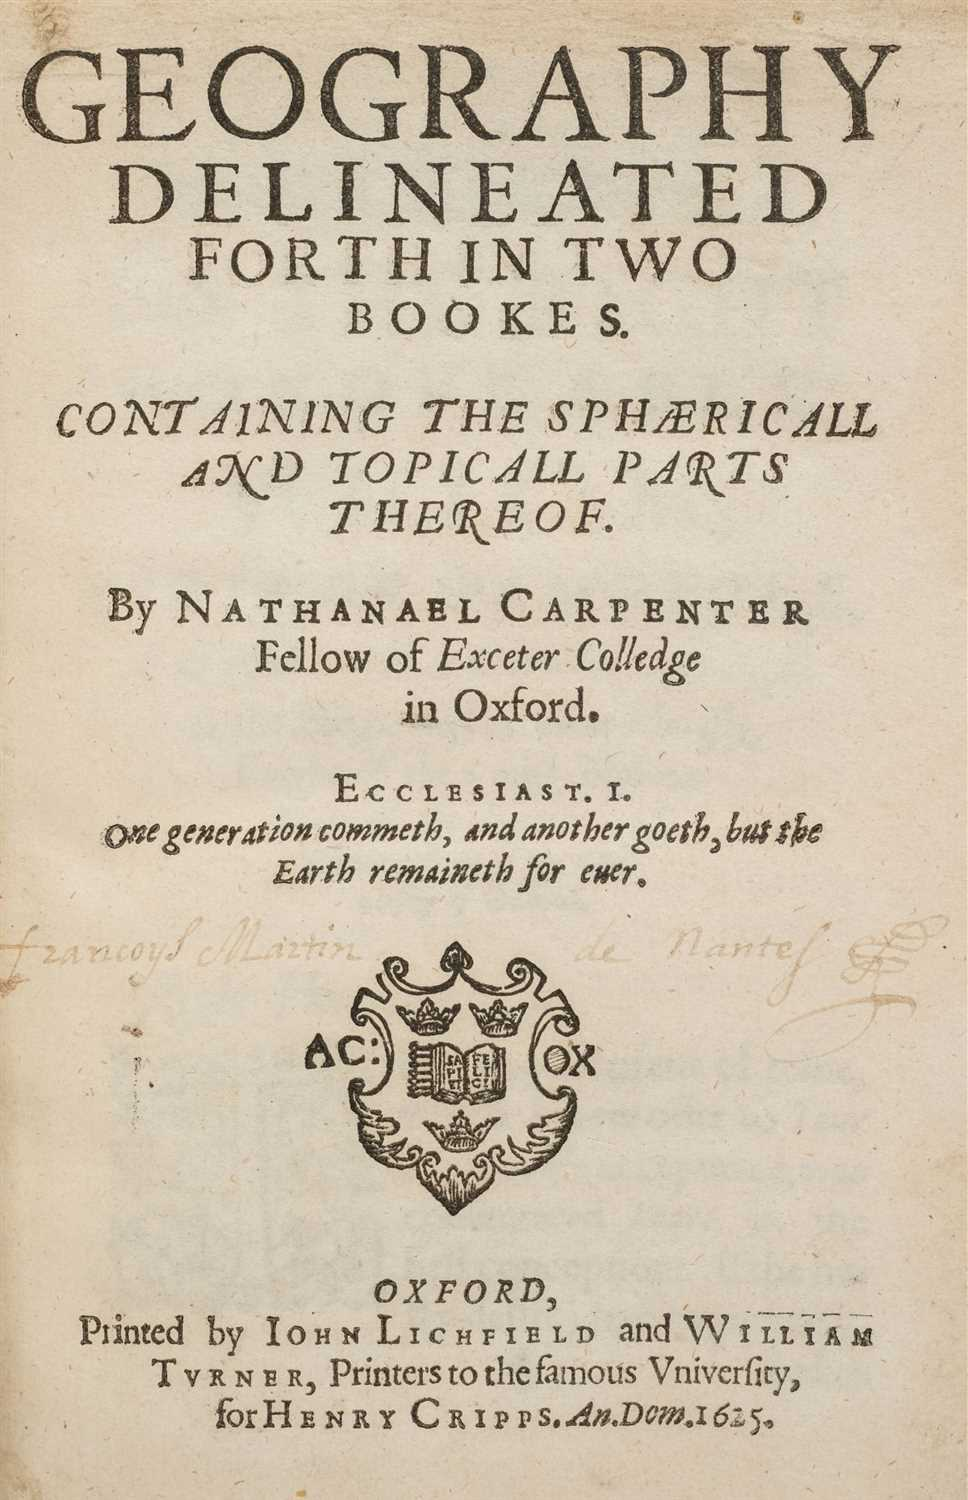 Lot 14-Carpenter (Nathaniel). Geography delineated forth in Two Bookes, 1st edition, 1625